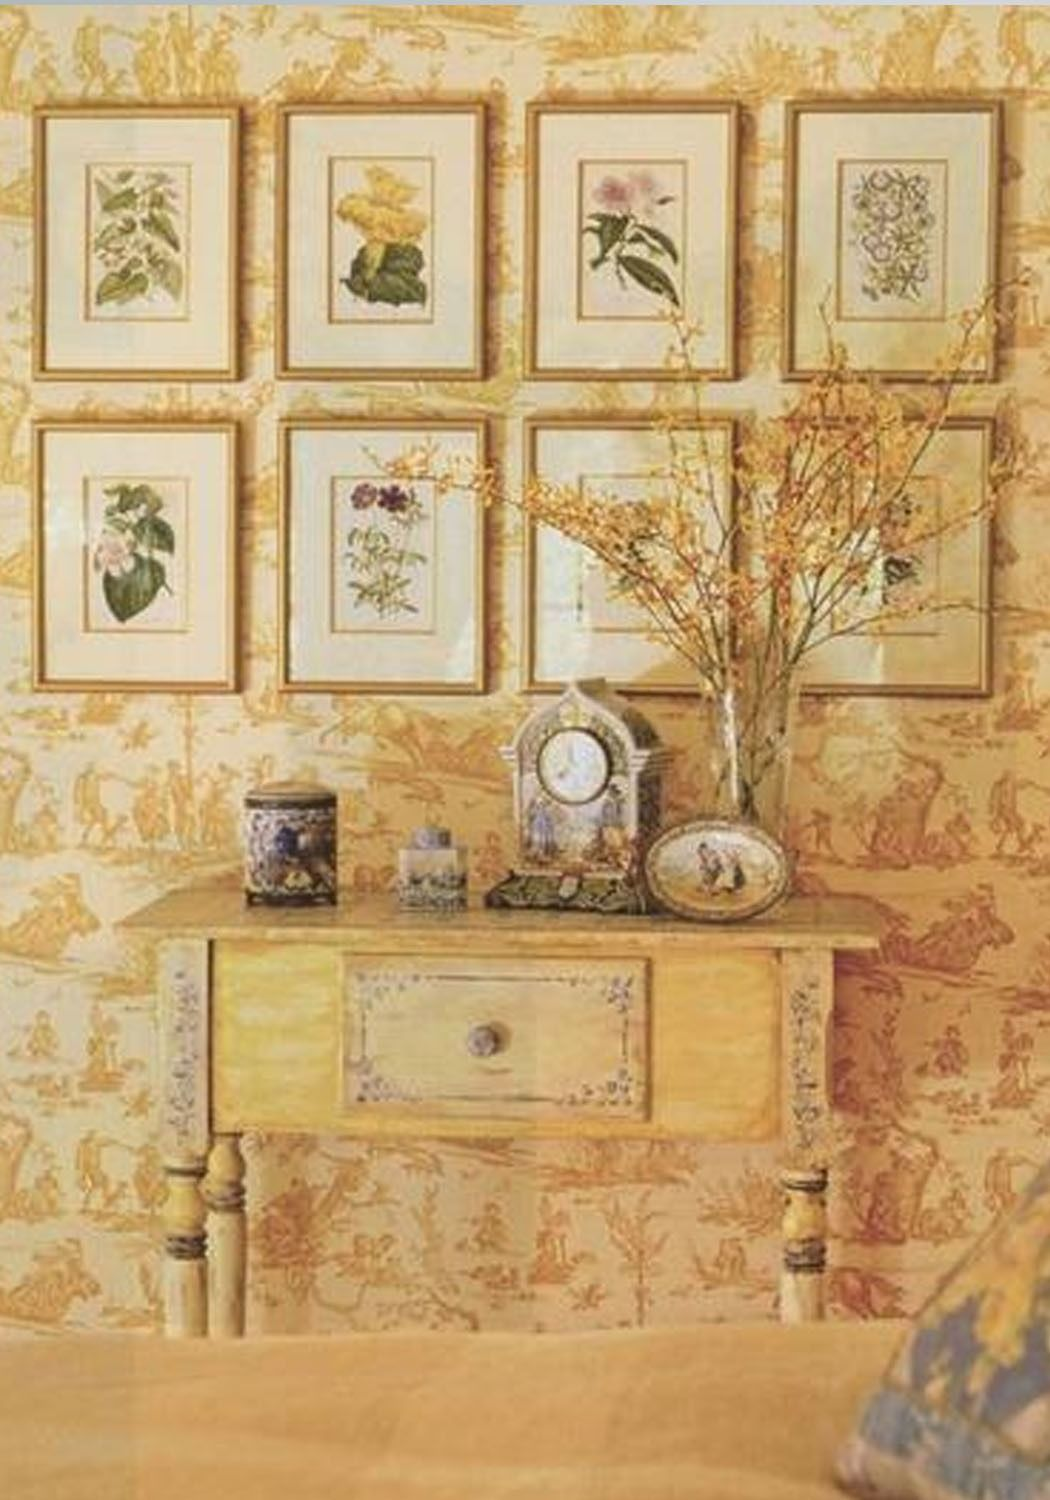 25 ways to use wallpaper to transform a room from Pinterest. | Home ...